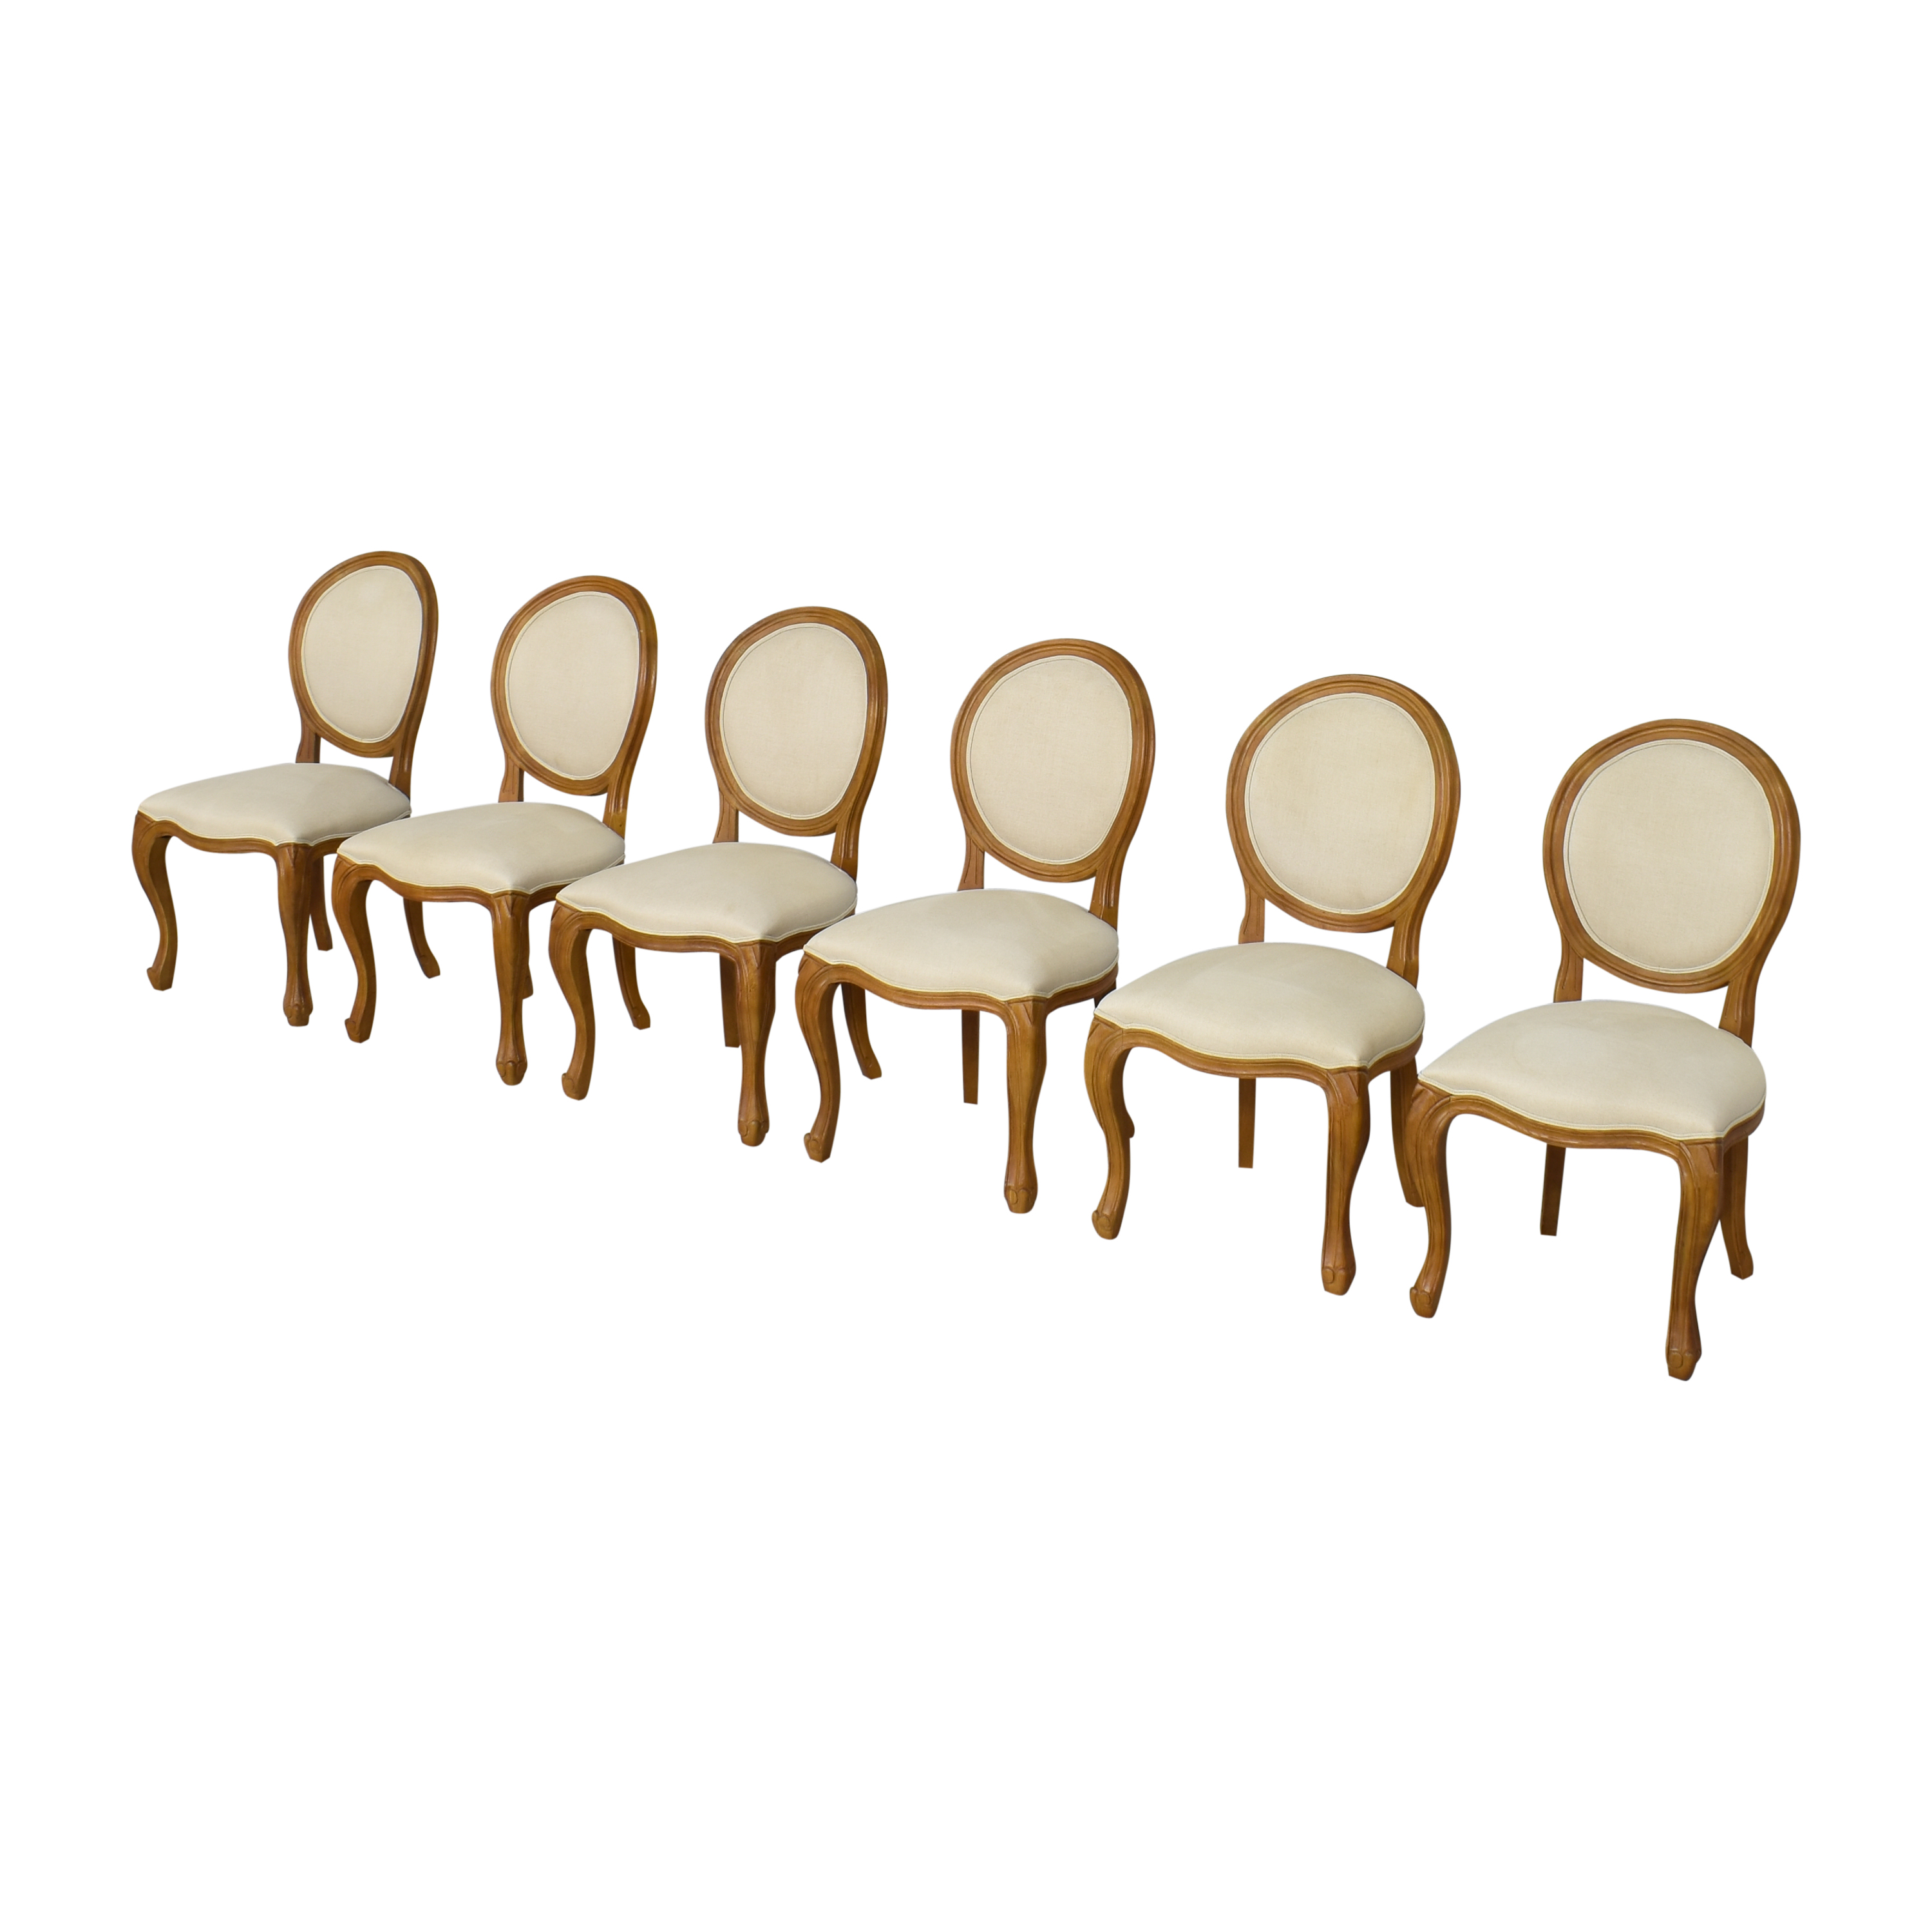 Arhaus Margot Dining Side Chairs / Chairs